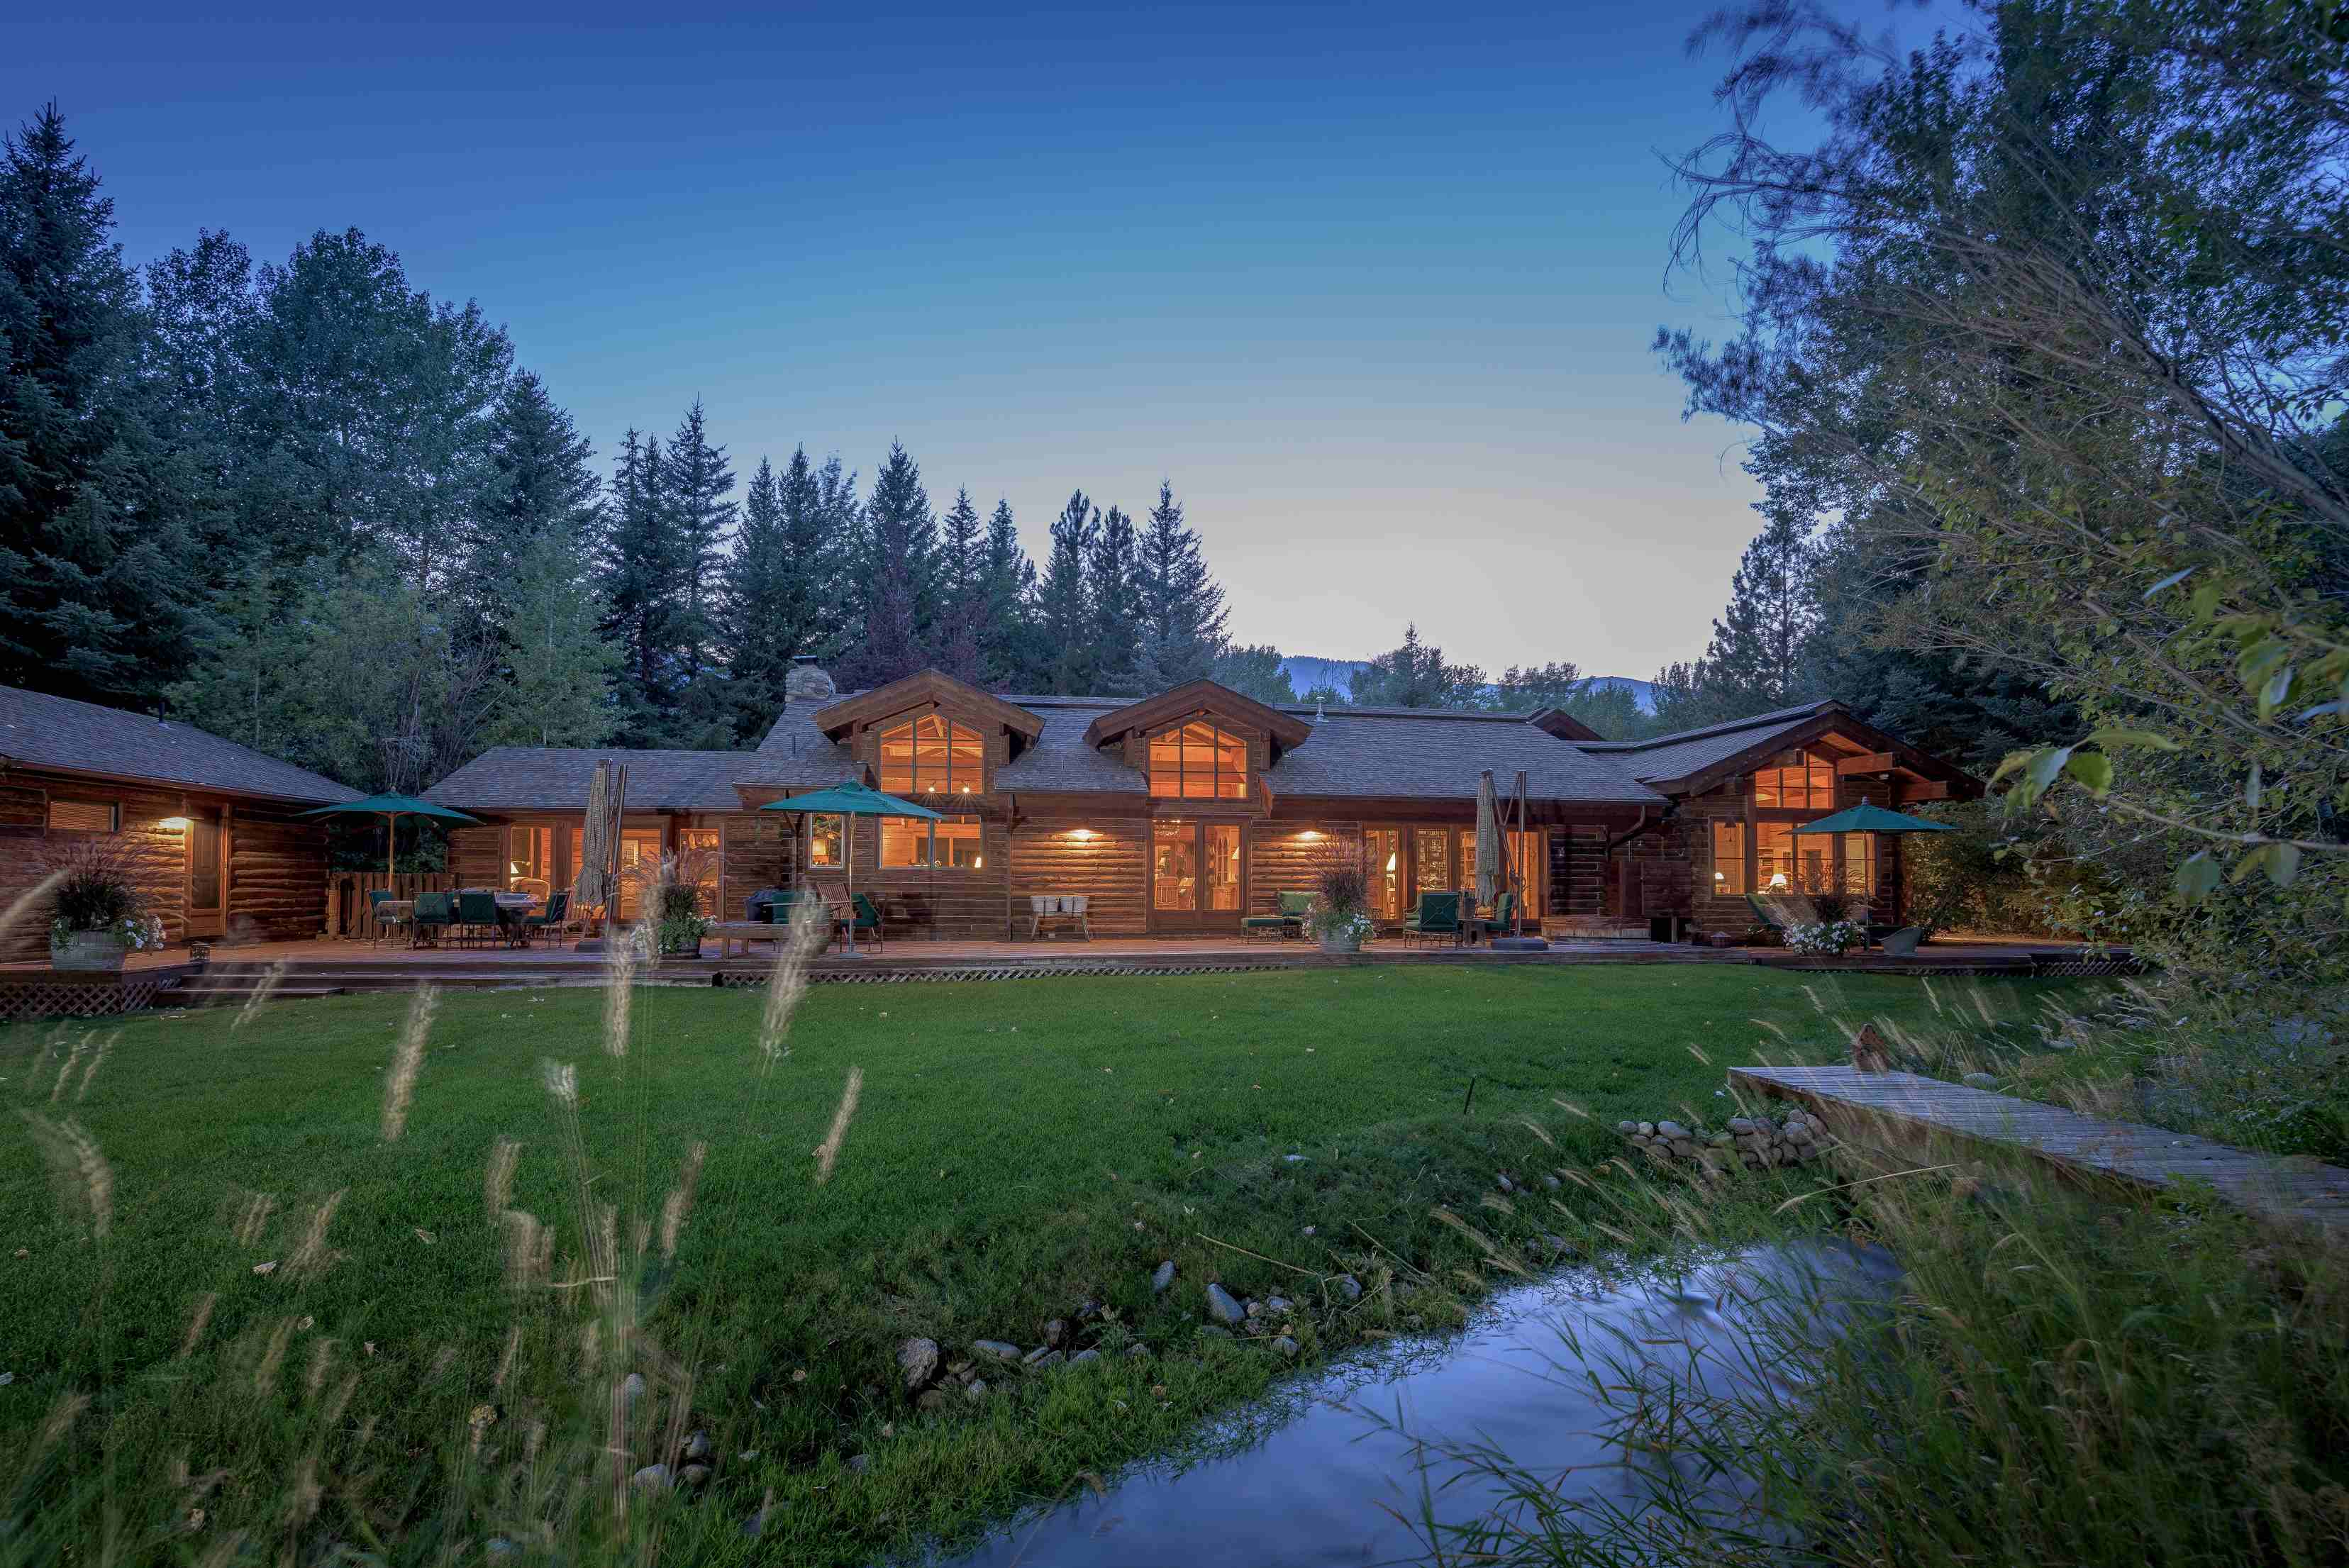 Single Family Home for Sale at Captivating Gimlet Compound 102 Deer Run Ketchum, Idaho 83340 United States